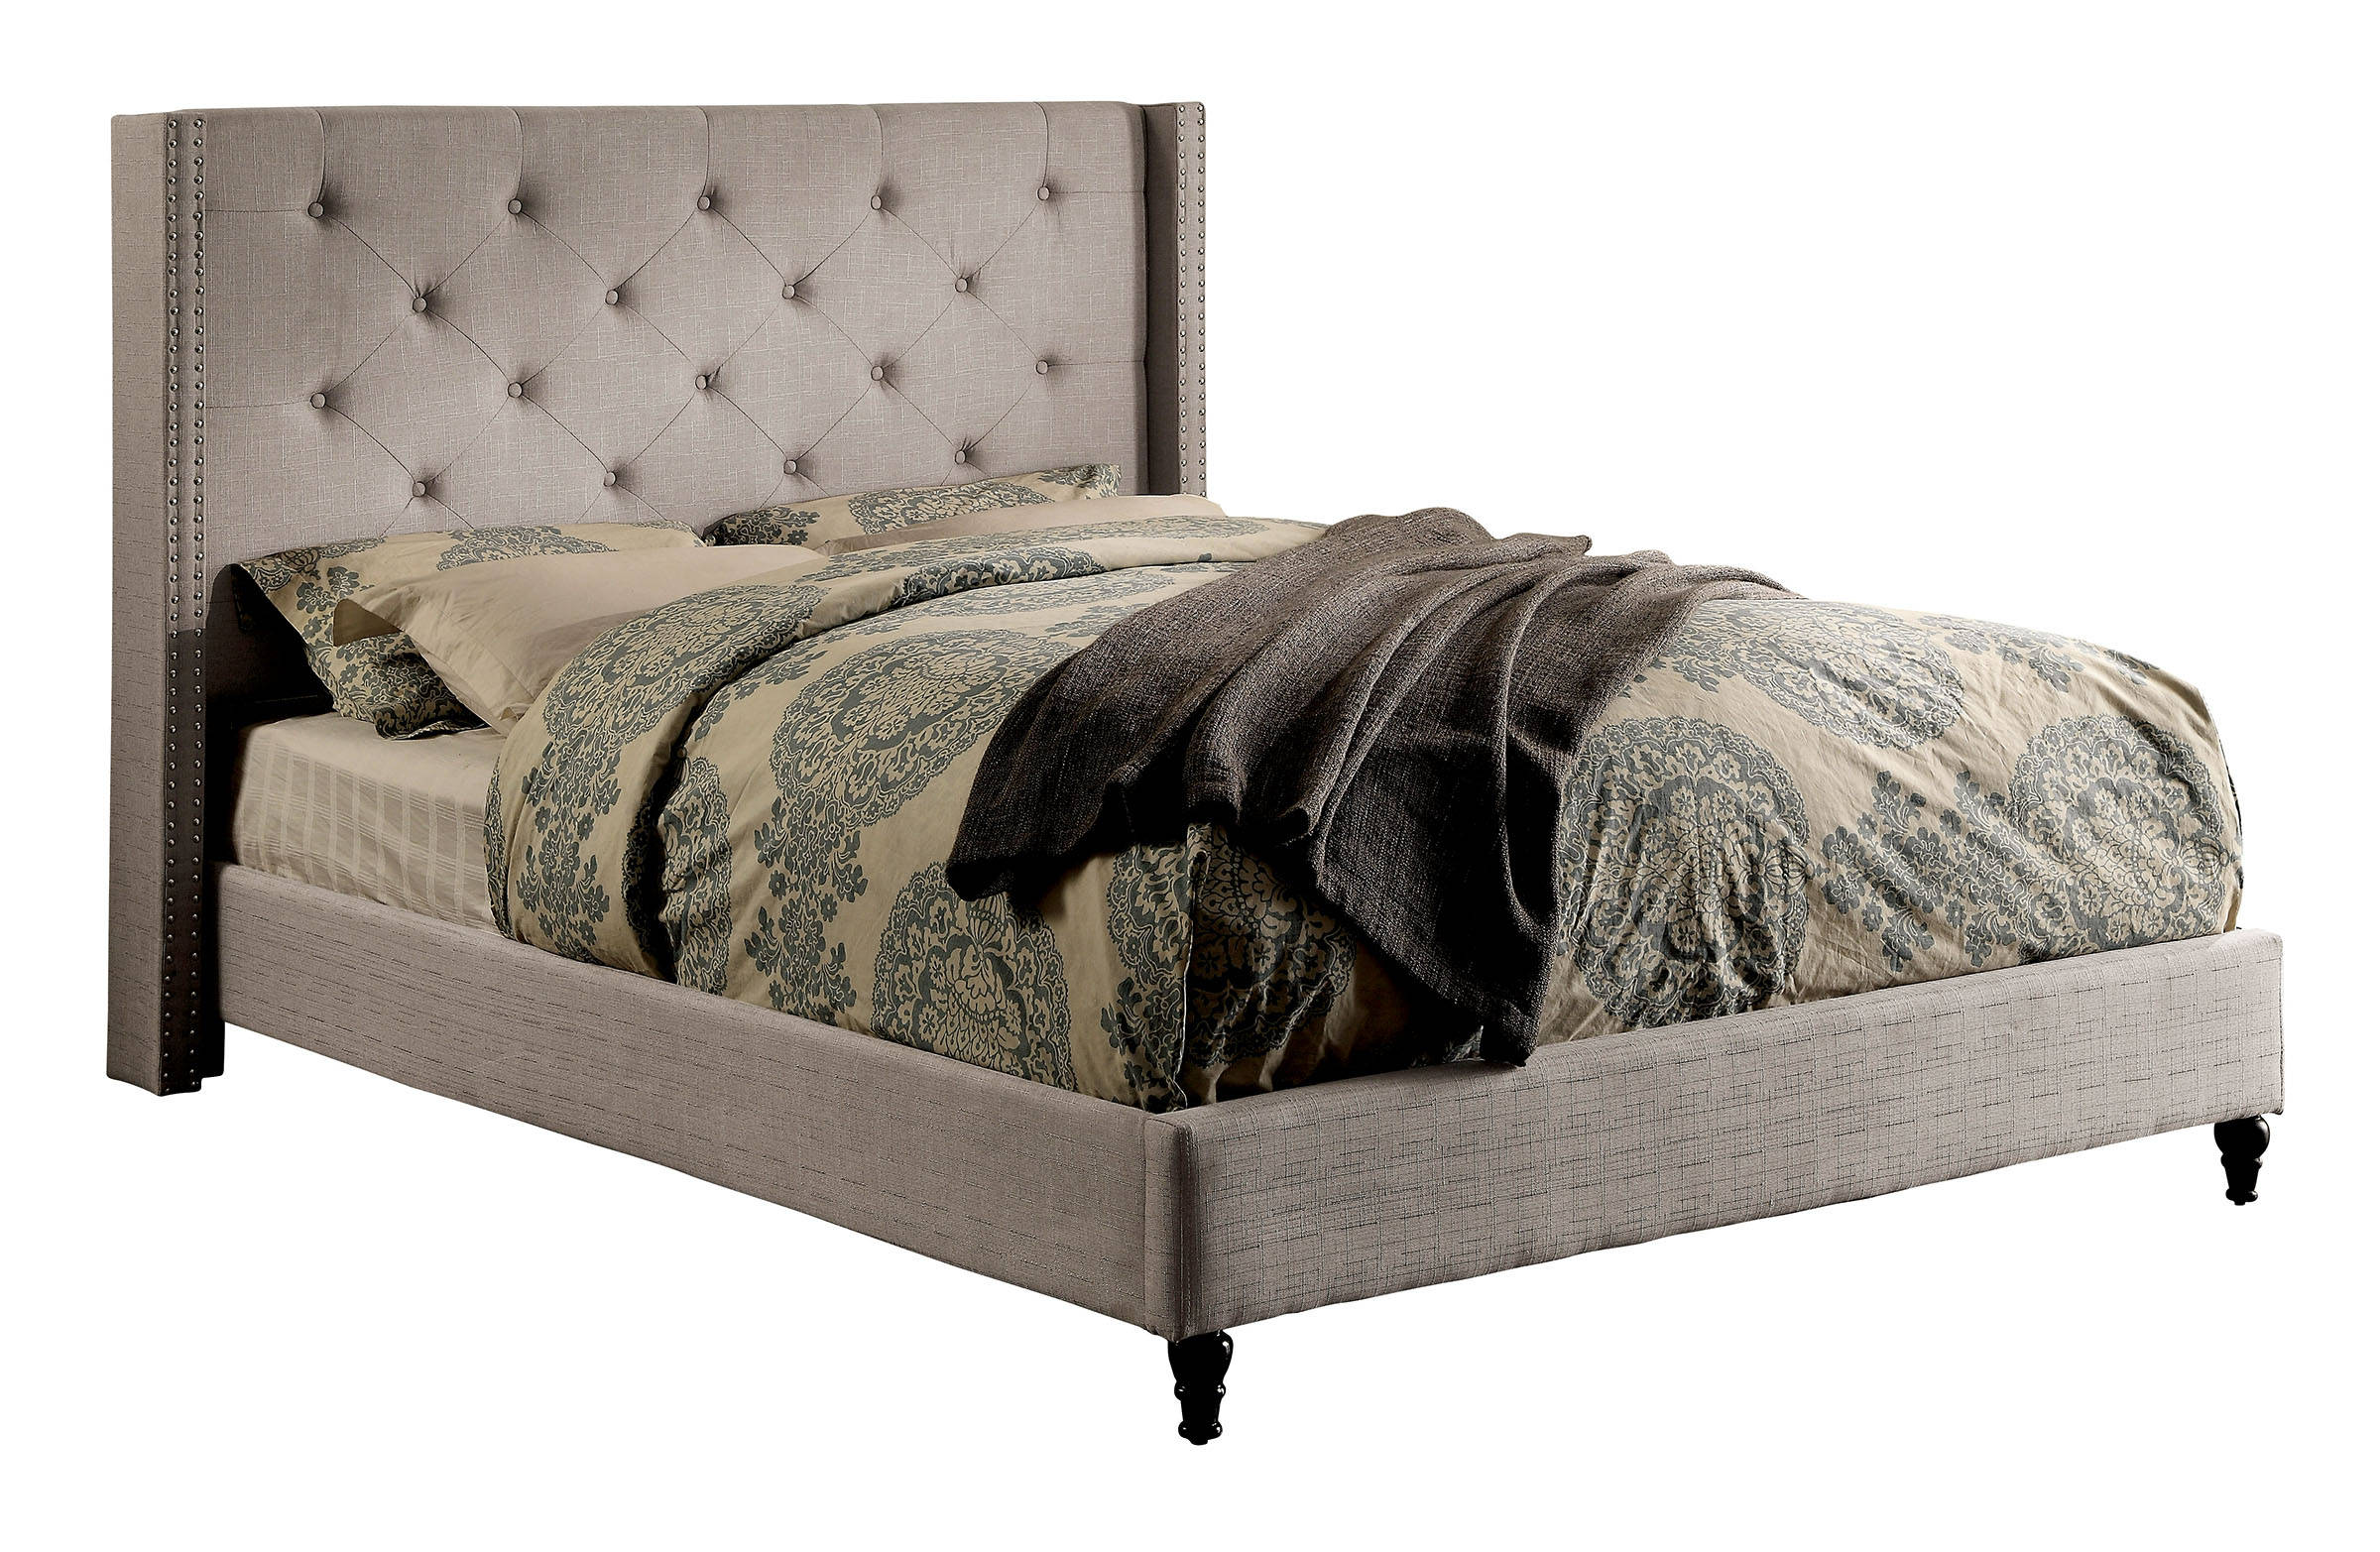 Furniture of america anabelle warm gray king bed the for Furniture of america king bed